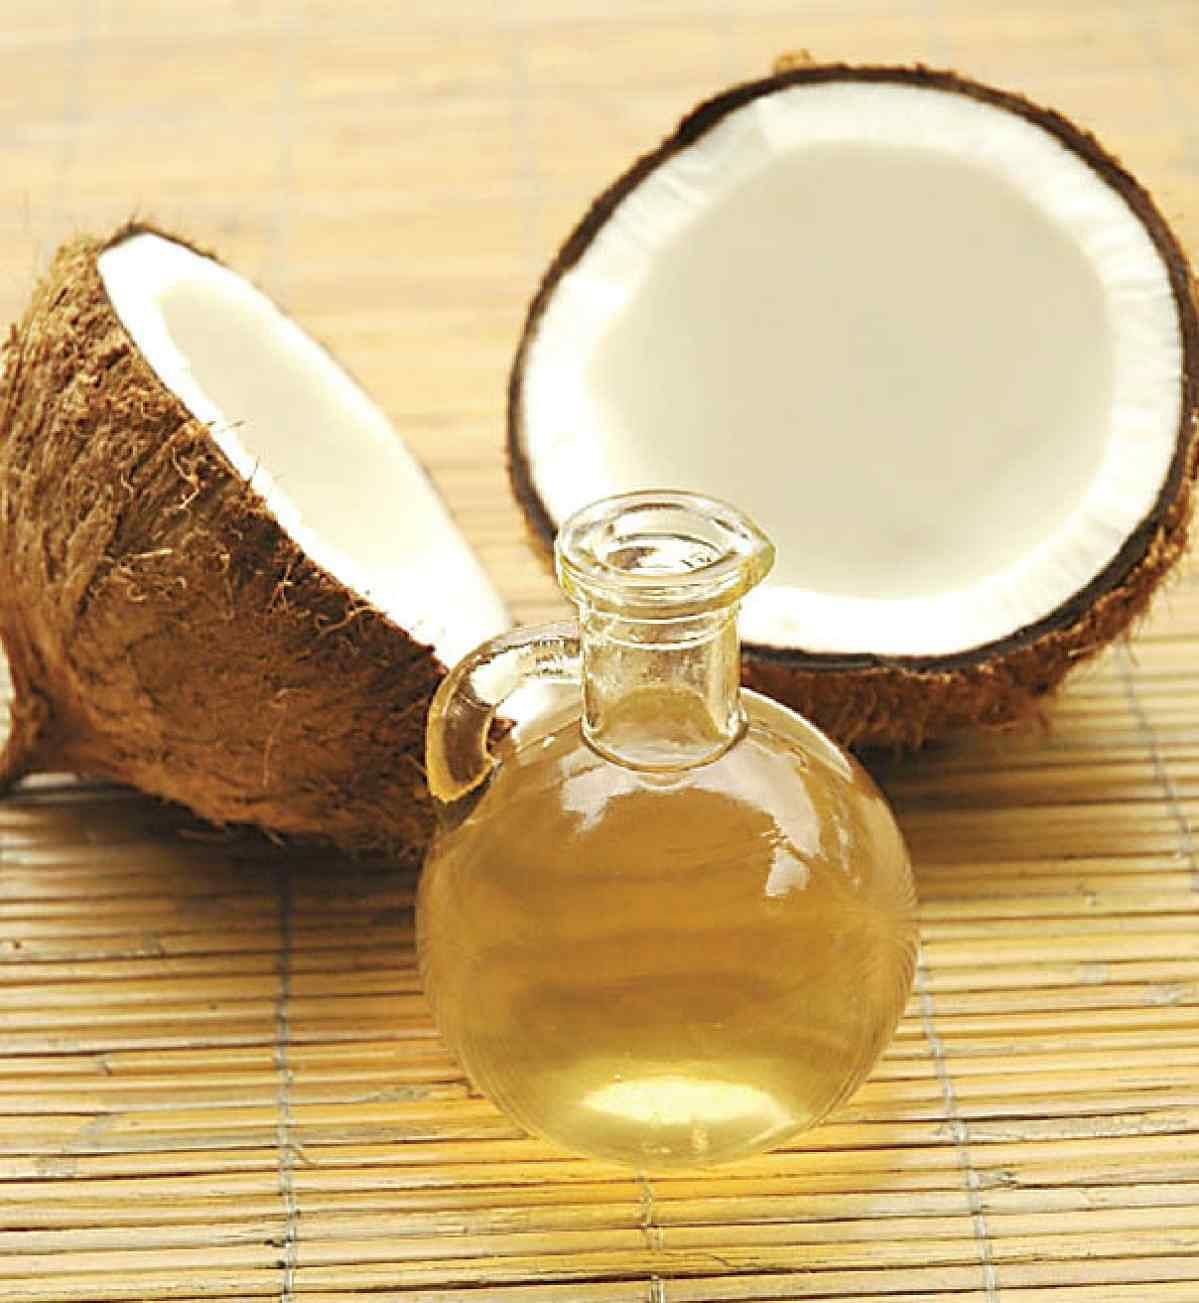 Virgin coconut oil is linked to many health benefits